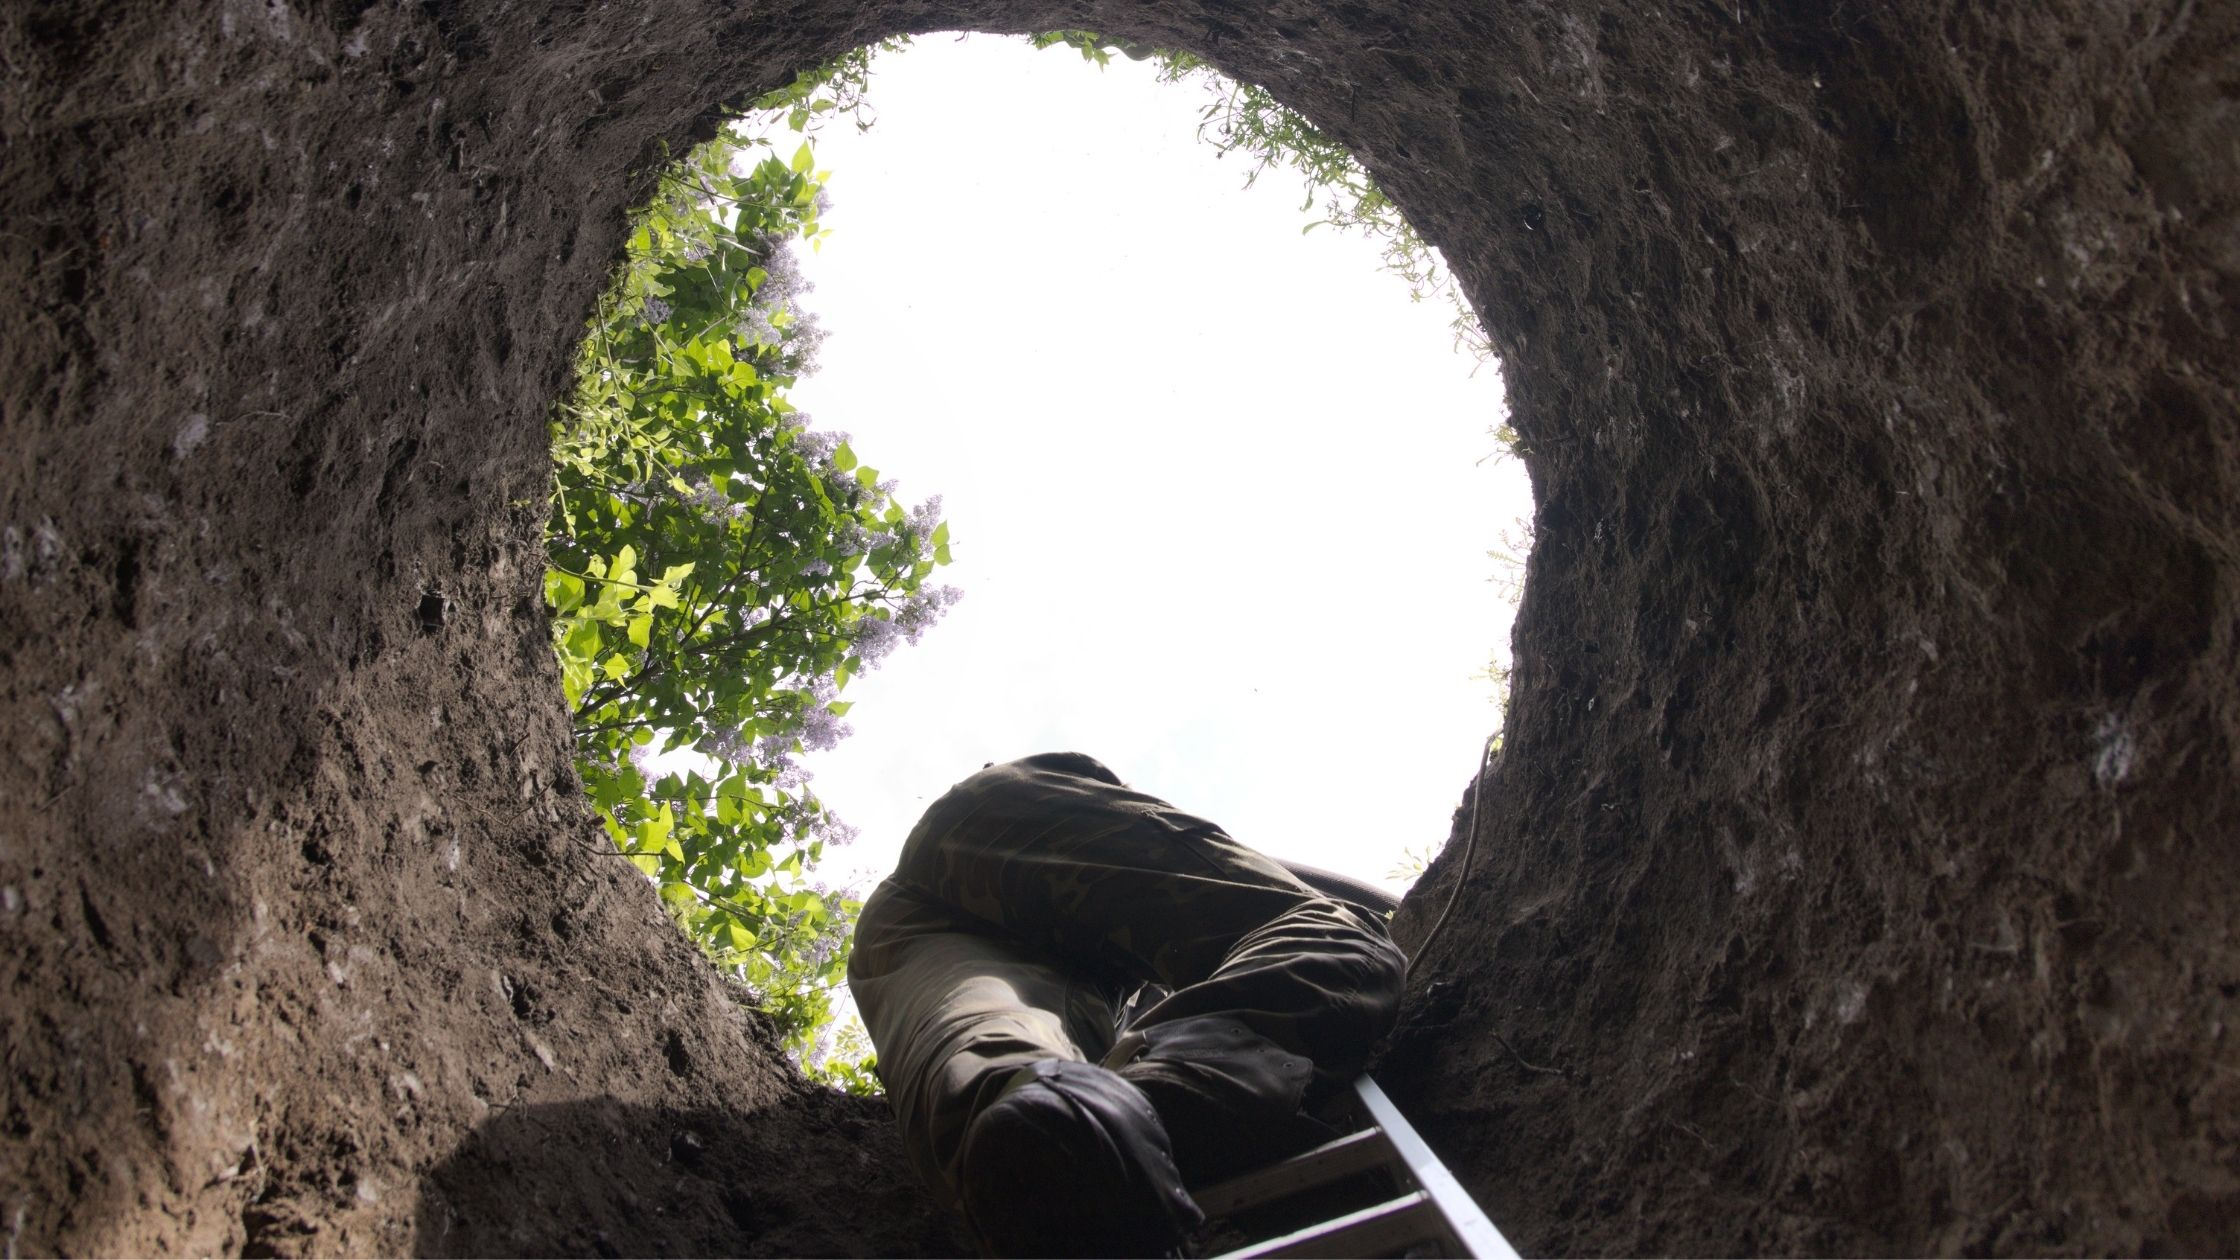 Person climbing out of a hole metaphor for climbing out of debt